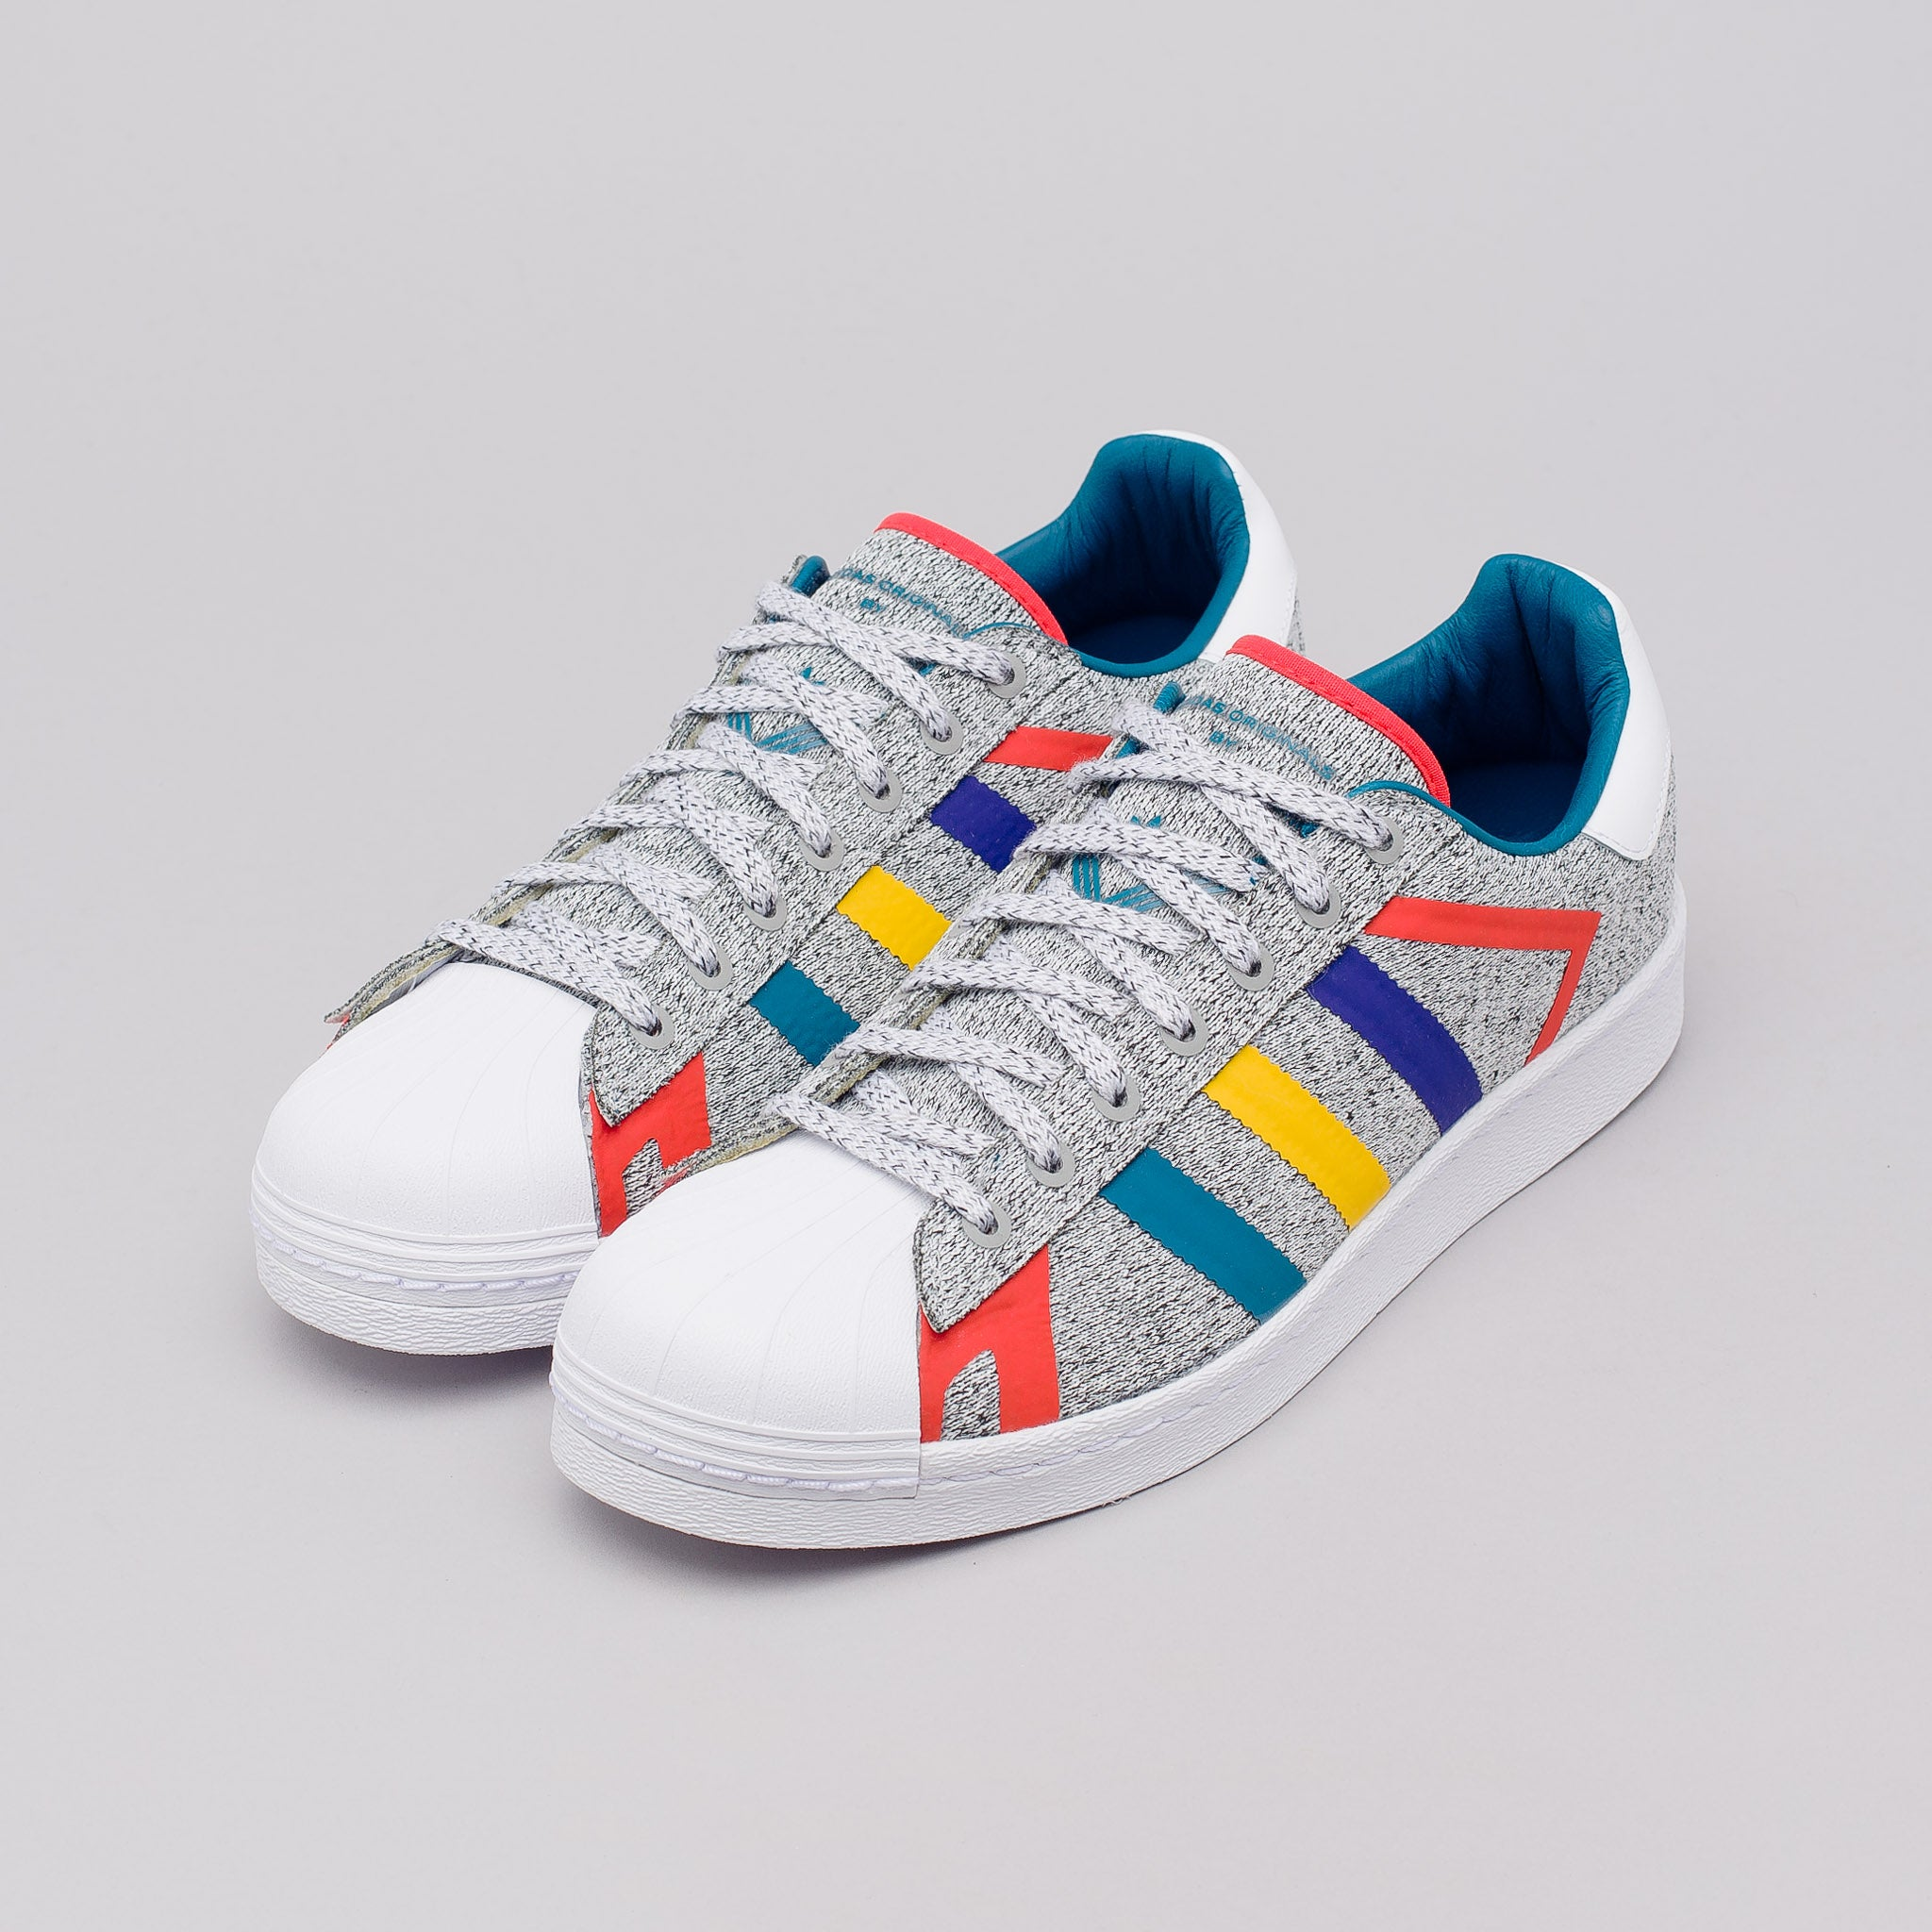 x White Mountaineering Superstar in Grey/White